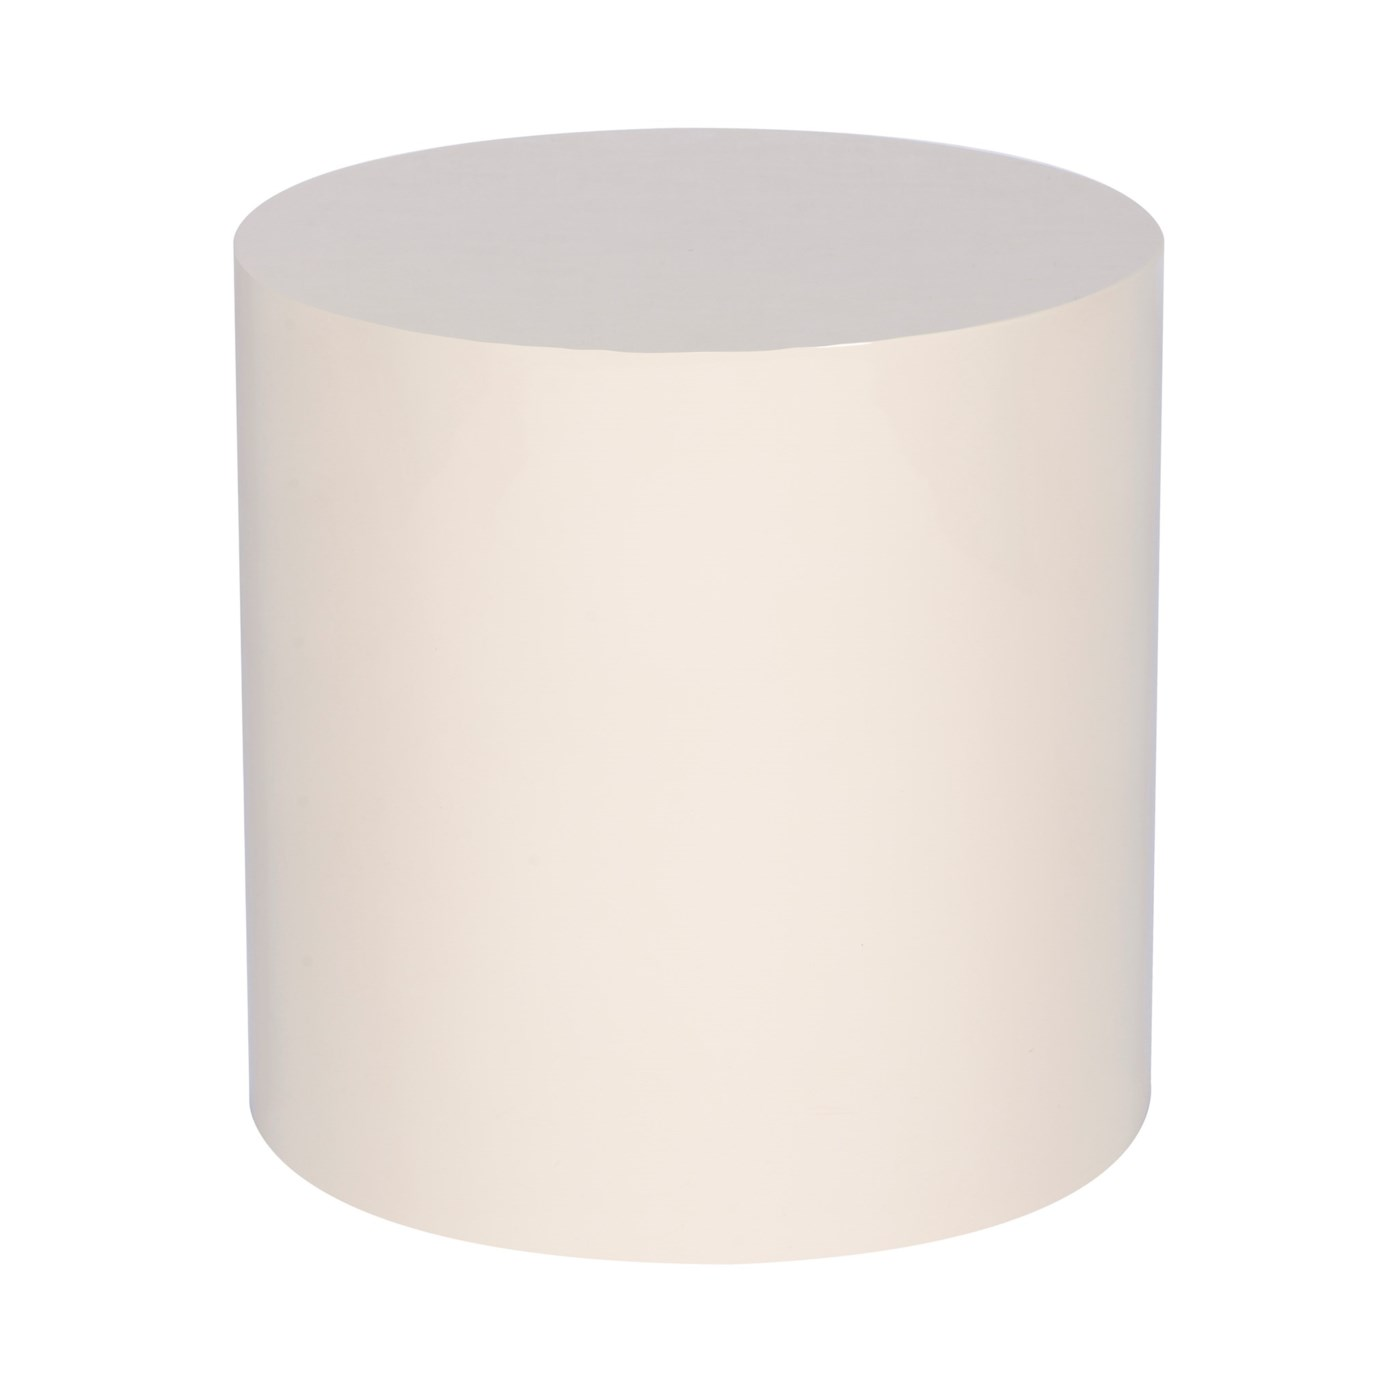 morgan accent table round pebble lacquer side tables cardboard high bar cover lighting oval antique concrete coffee three legged slim white living room end designer glass tall